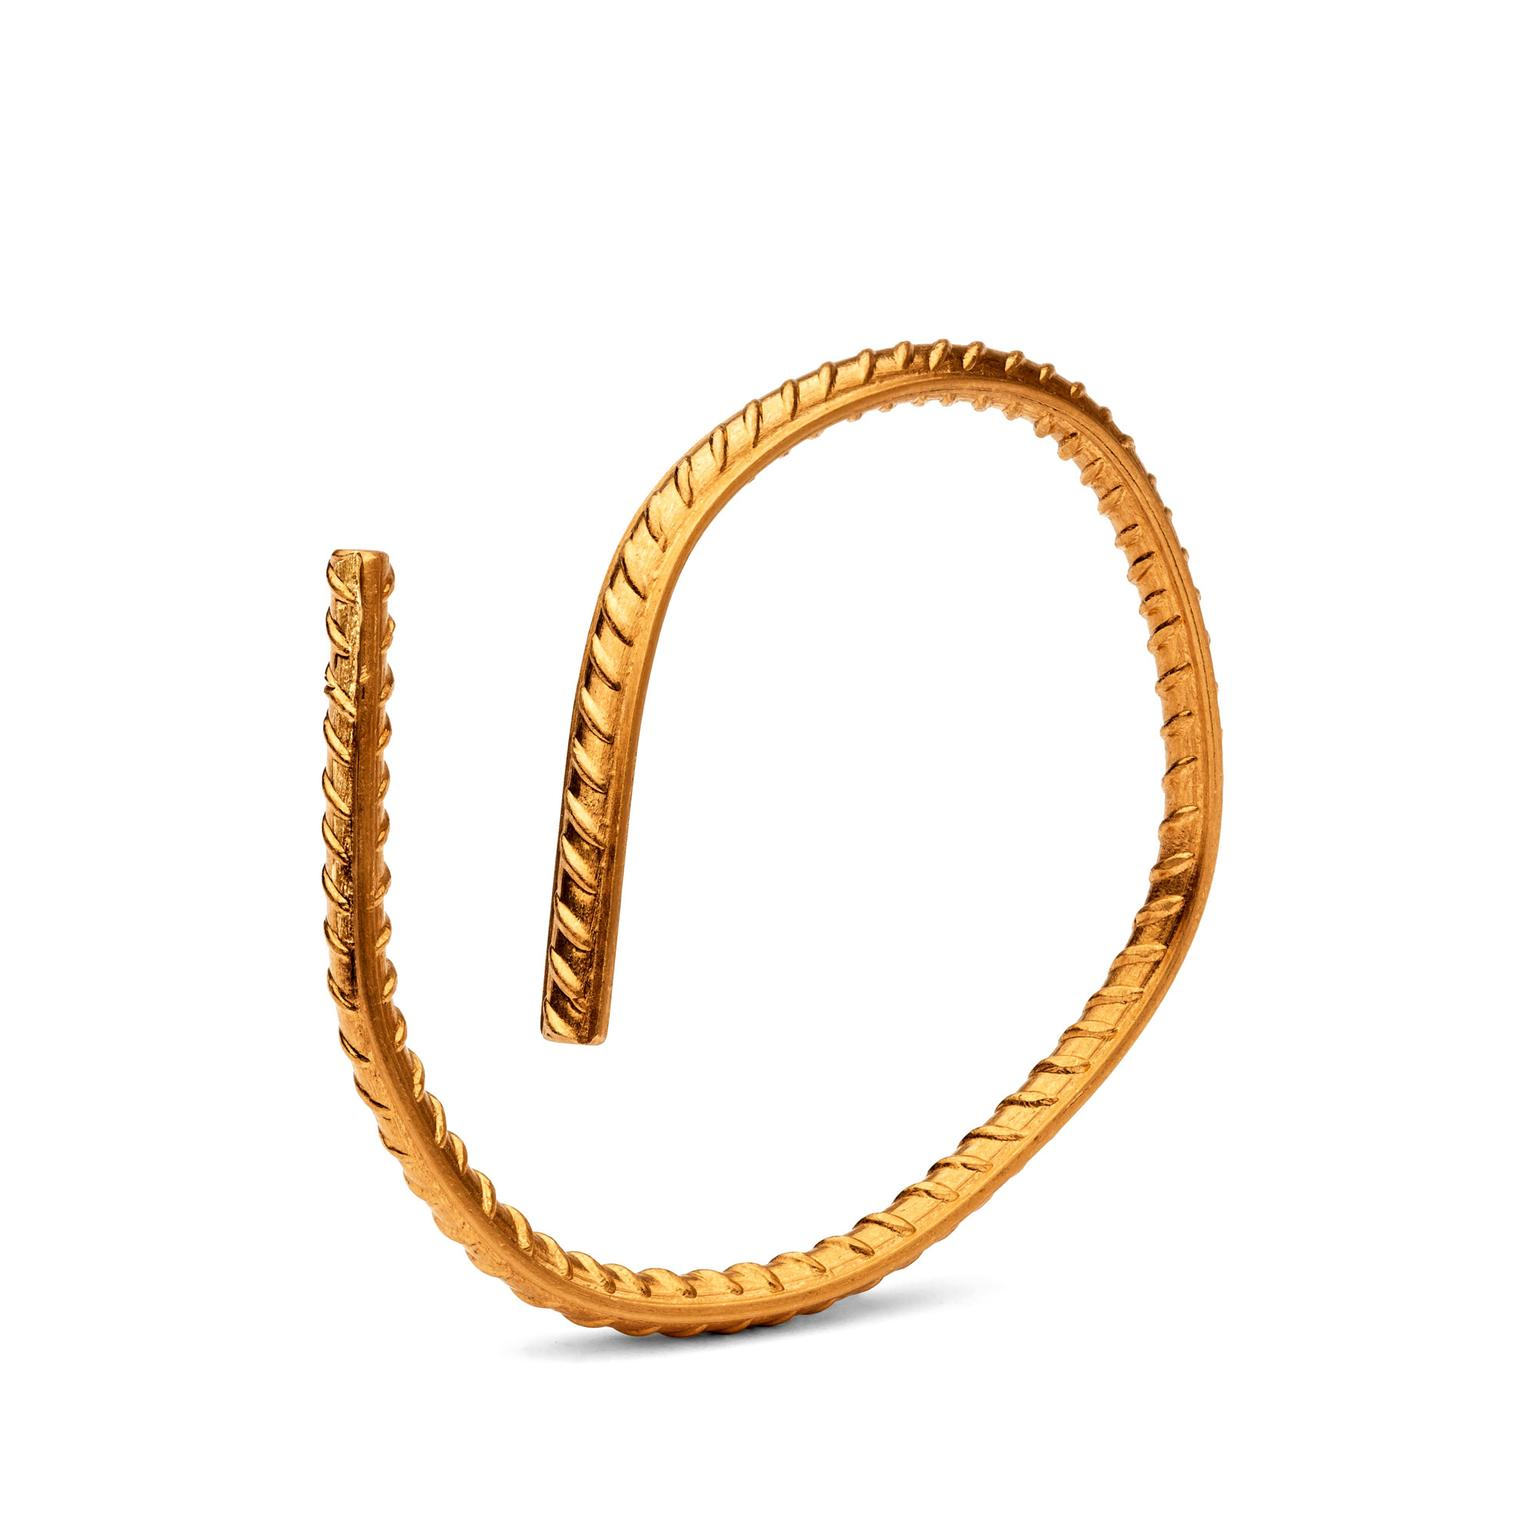 Ai Weiwei for Elisabetta Cipriani yellow gold bracelet